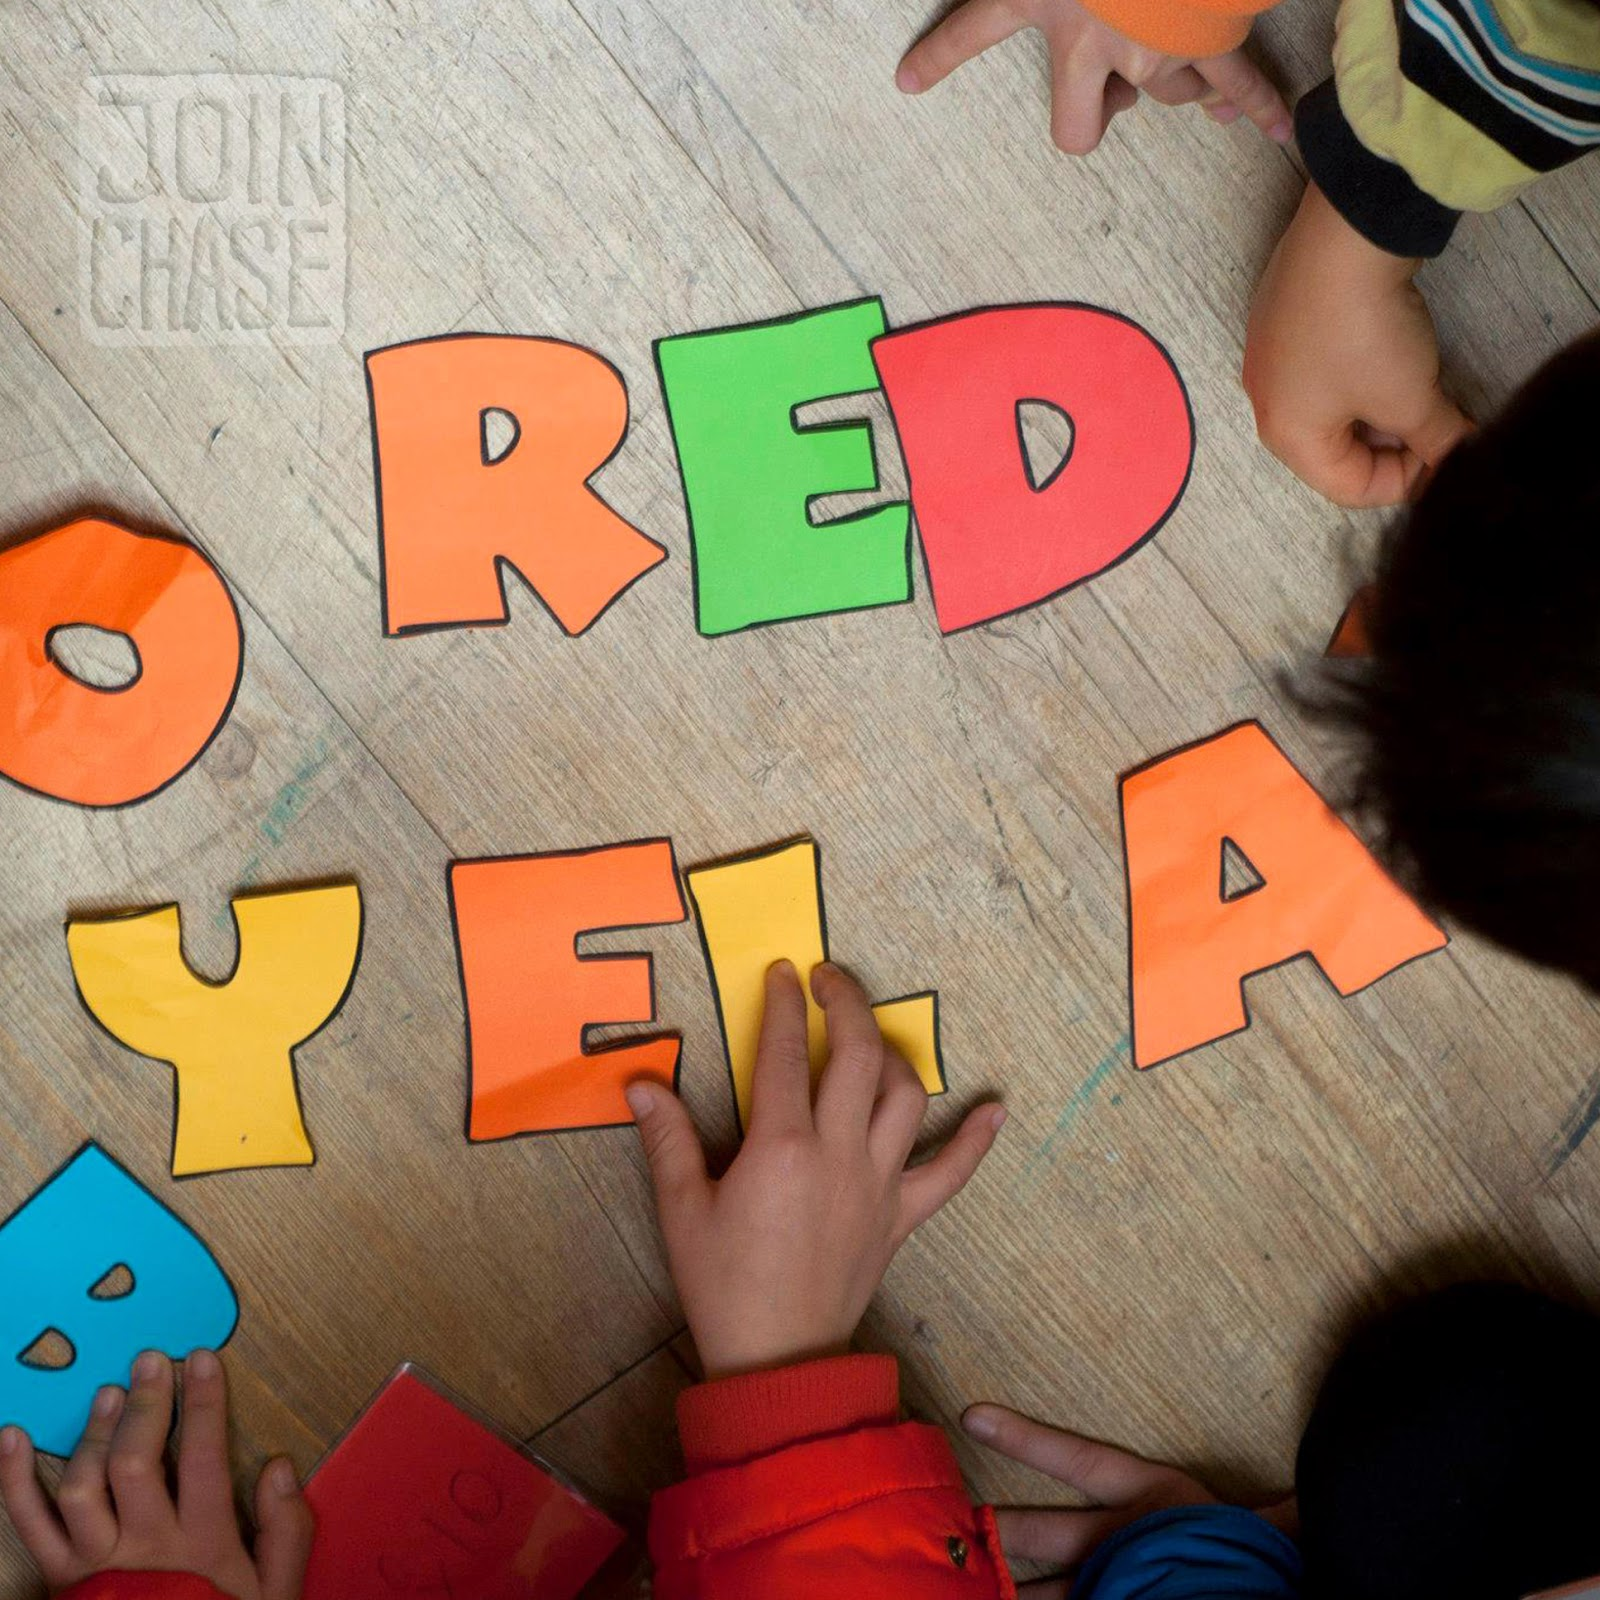 Students spelling English words during a game of Steal the Bacon in South Korea.